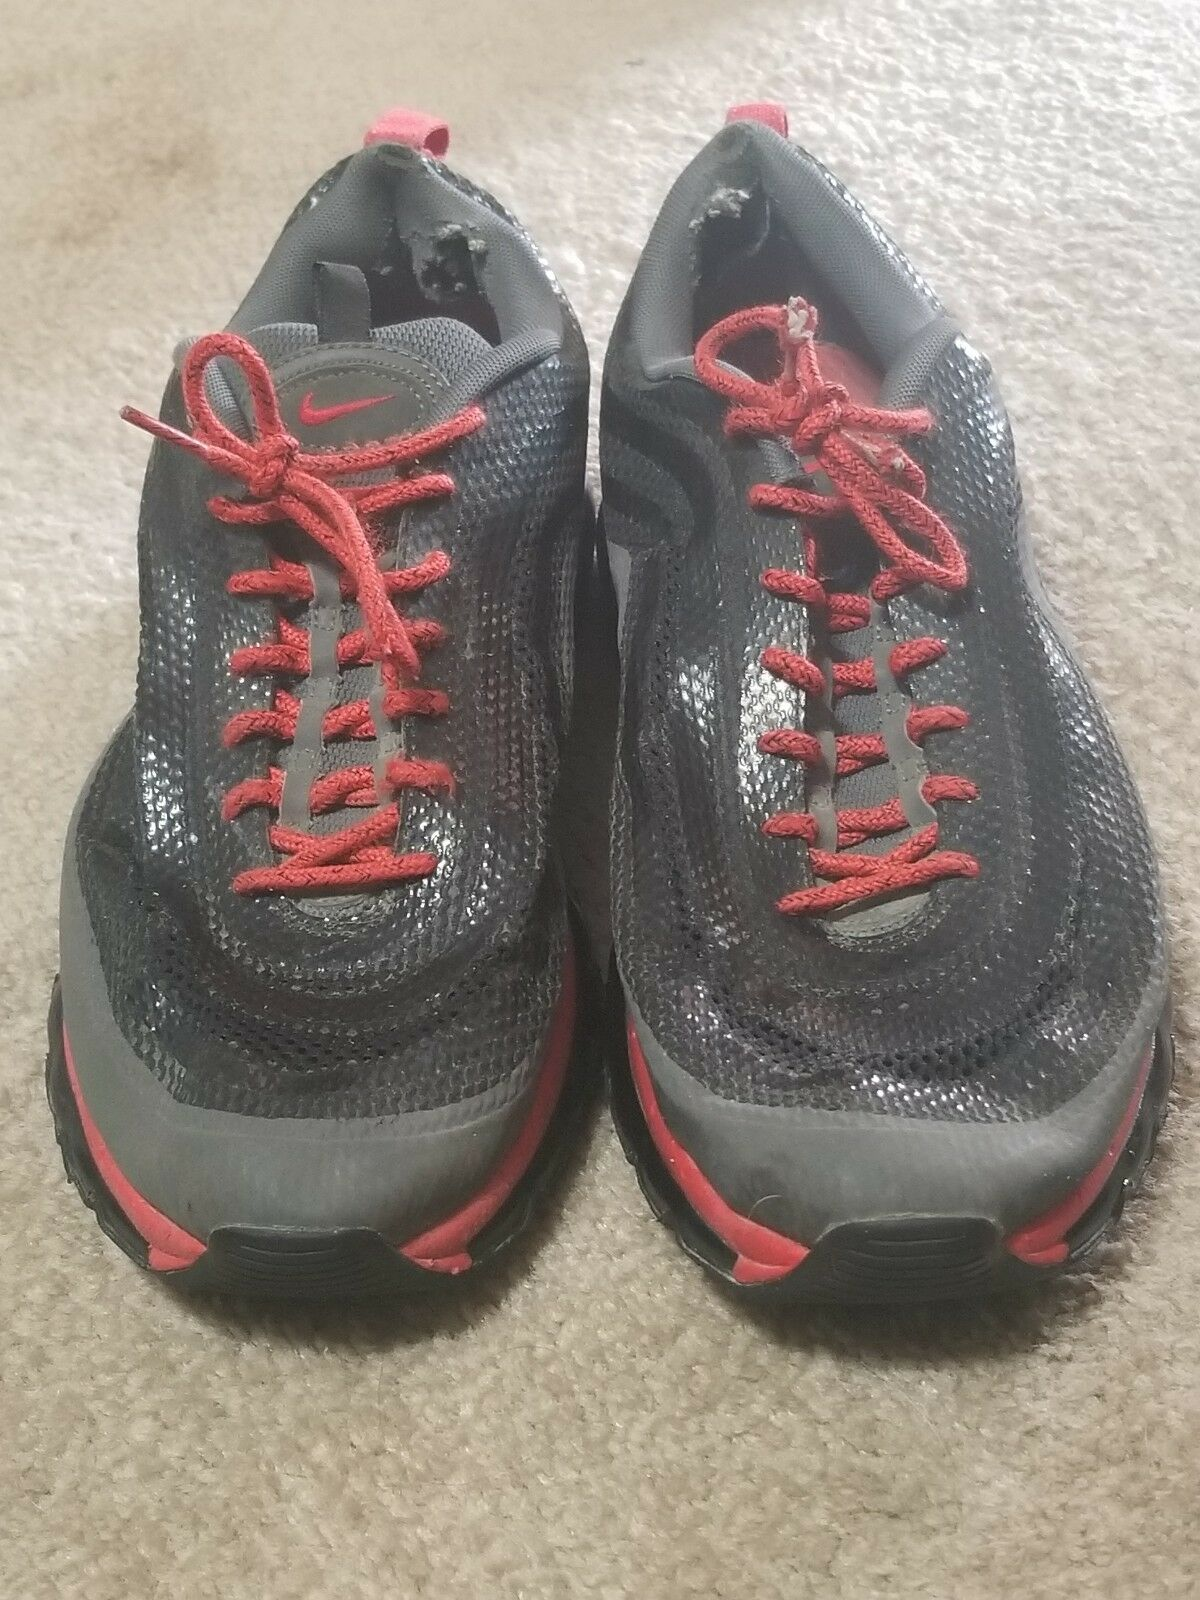 Nike Air Max 97 HYP Red Red Red Crimson Black Grey Mens Size 11.5 Rare 631753-001 71e699